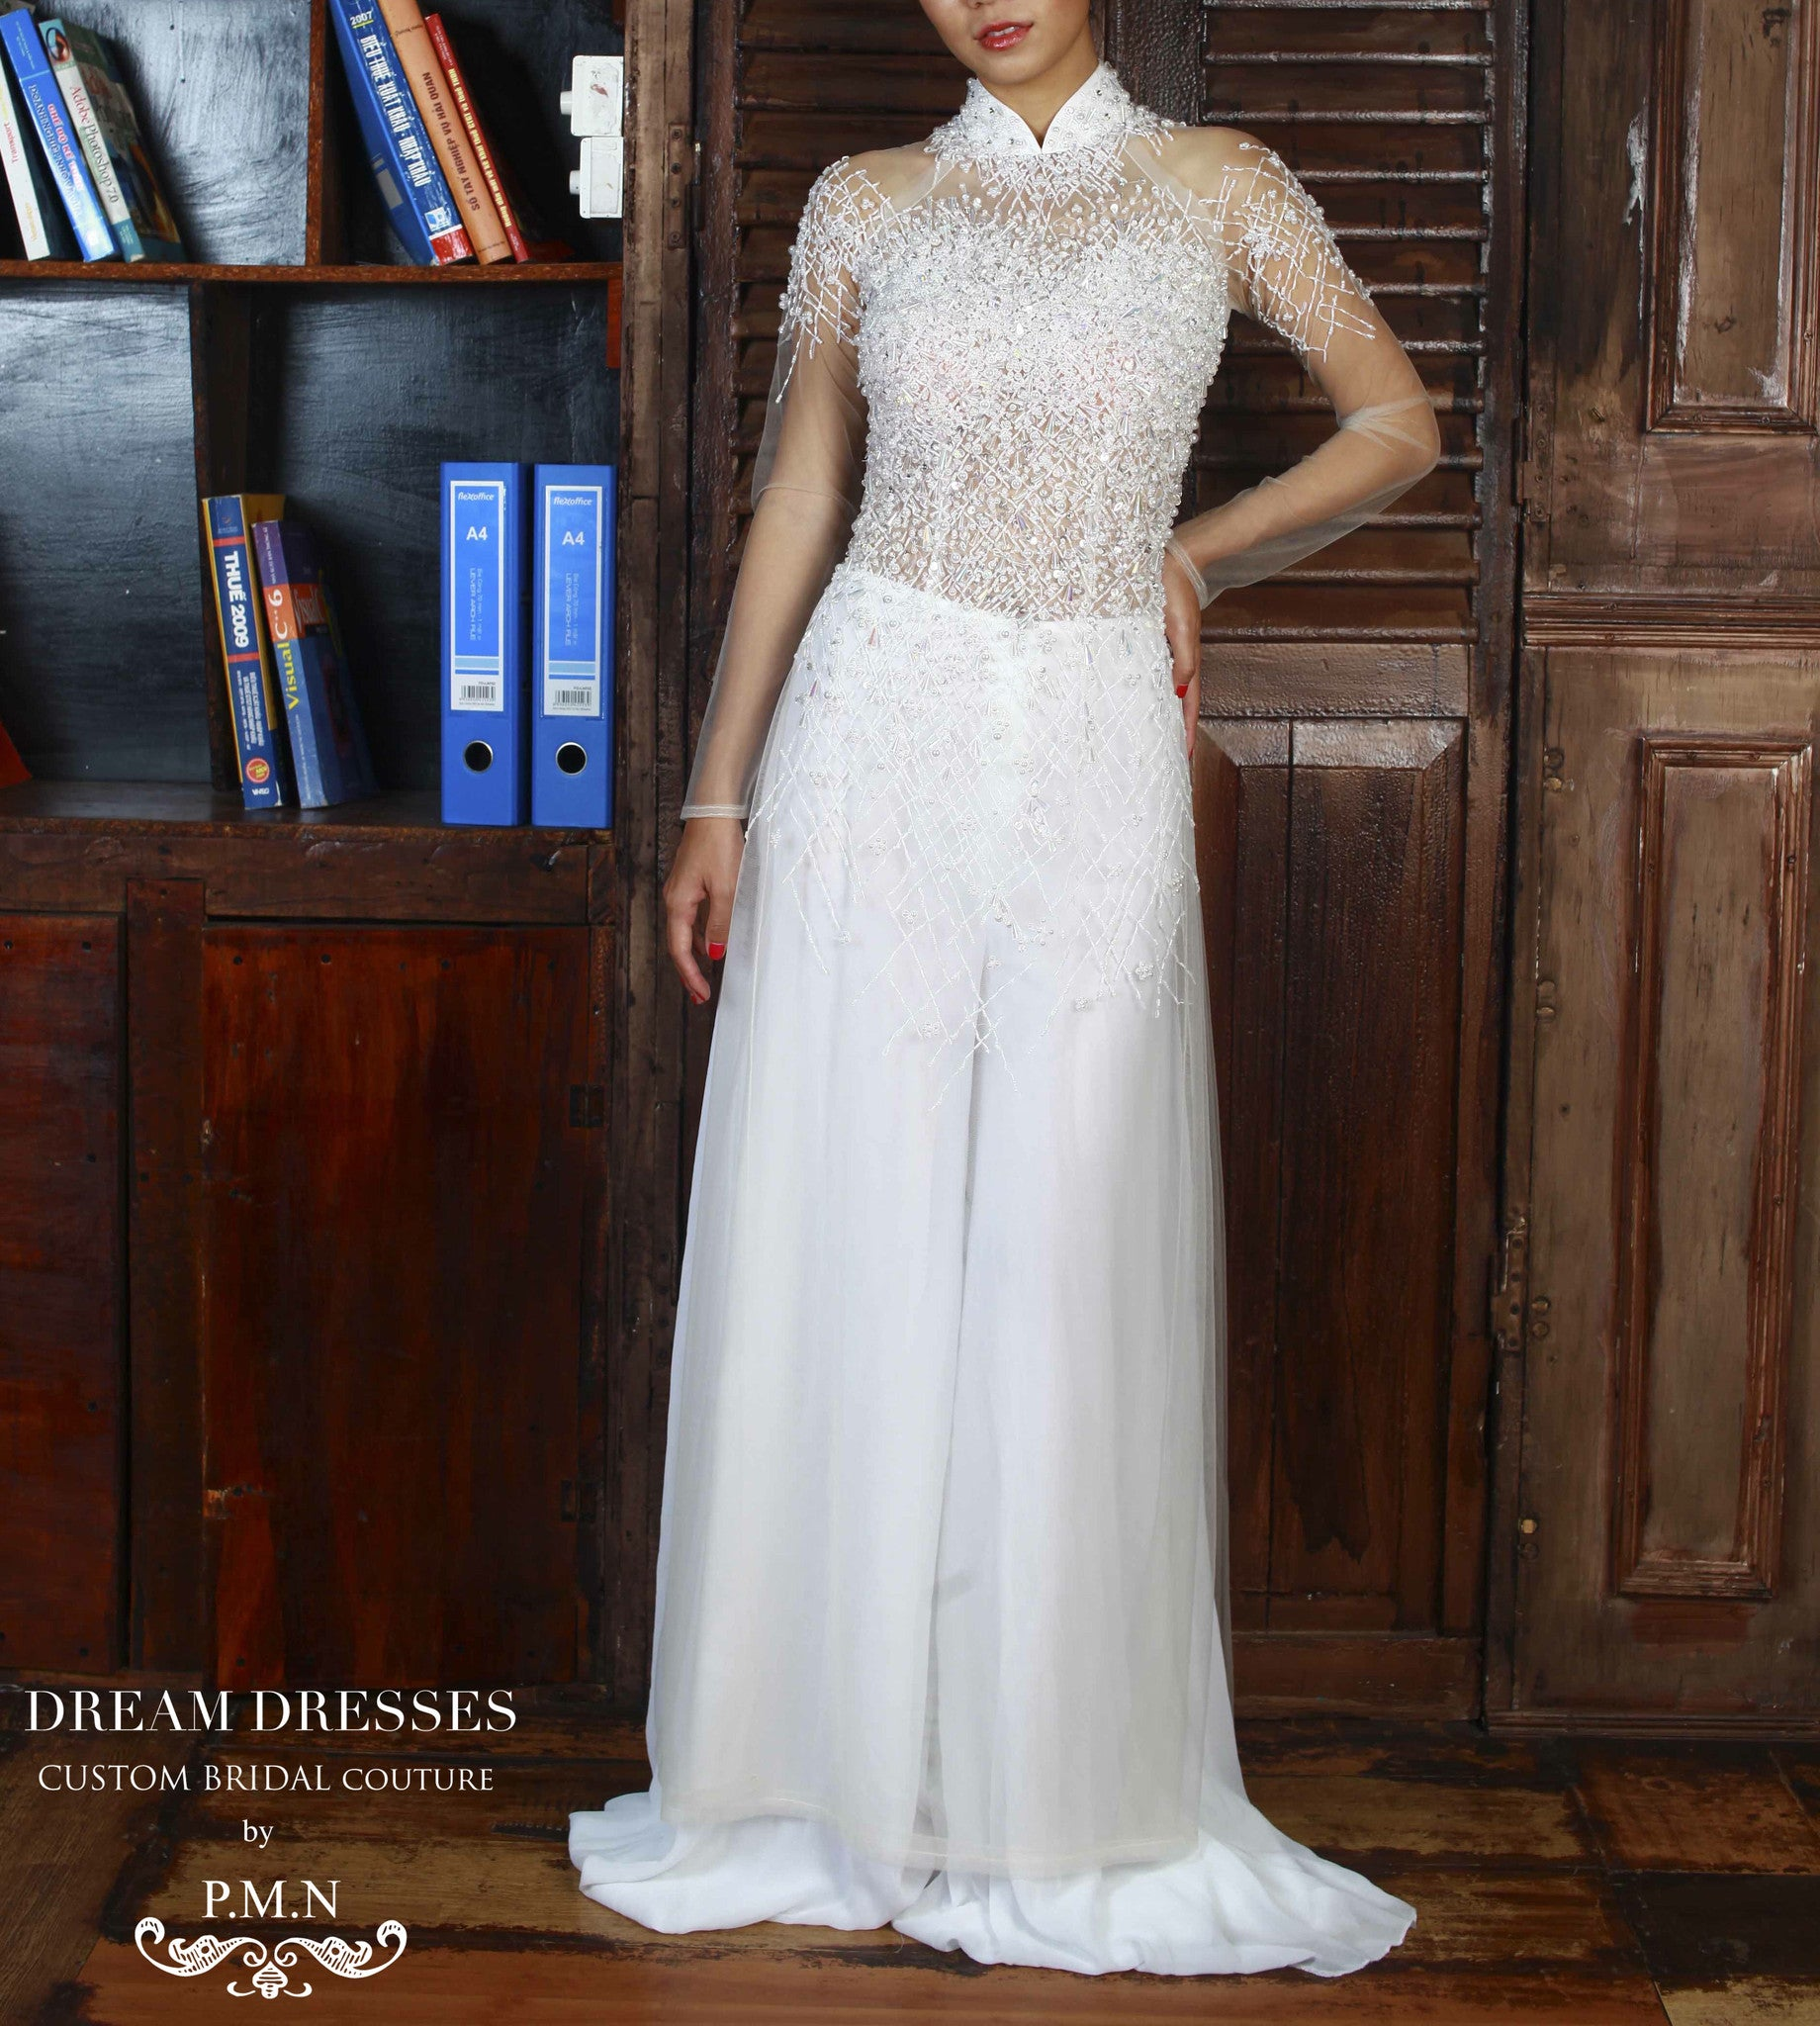 Vietnamese Wedding Gown: Vietnamese Bridal Dress With Hand-Beading